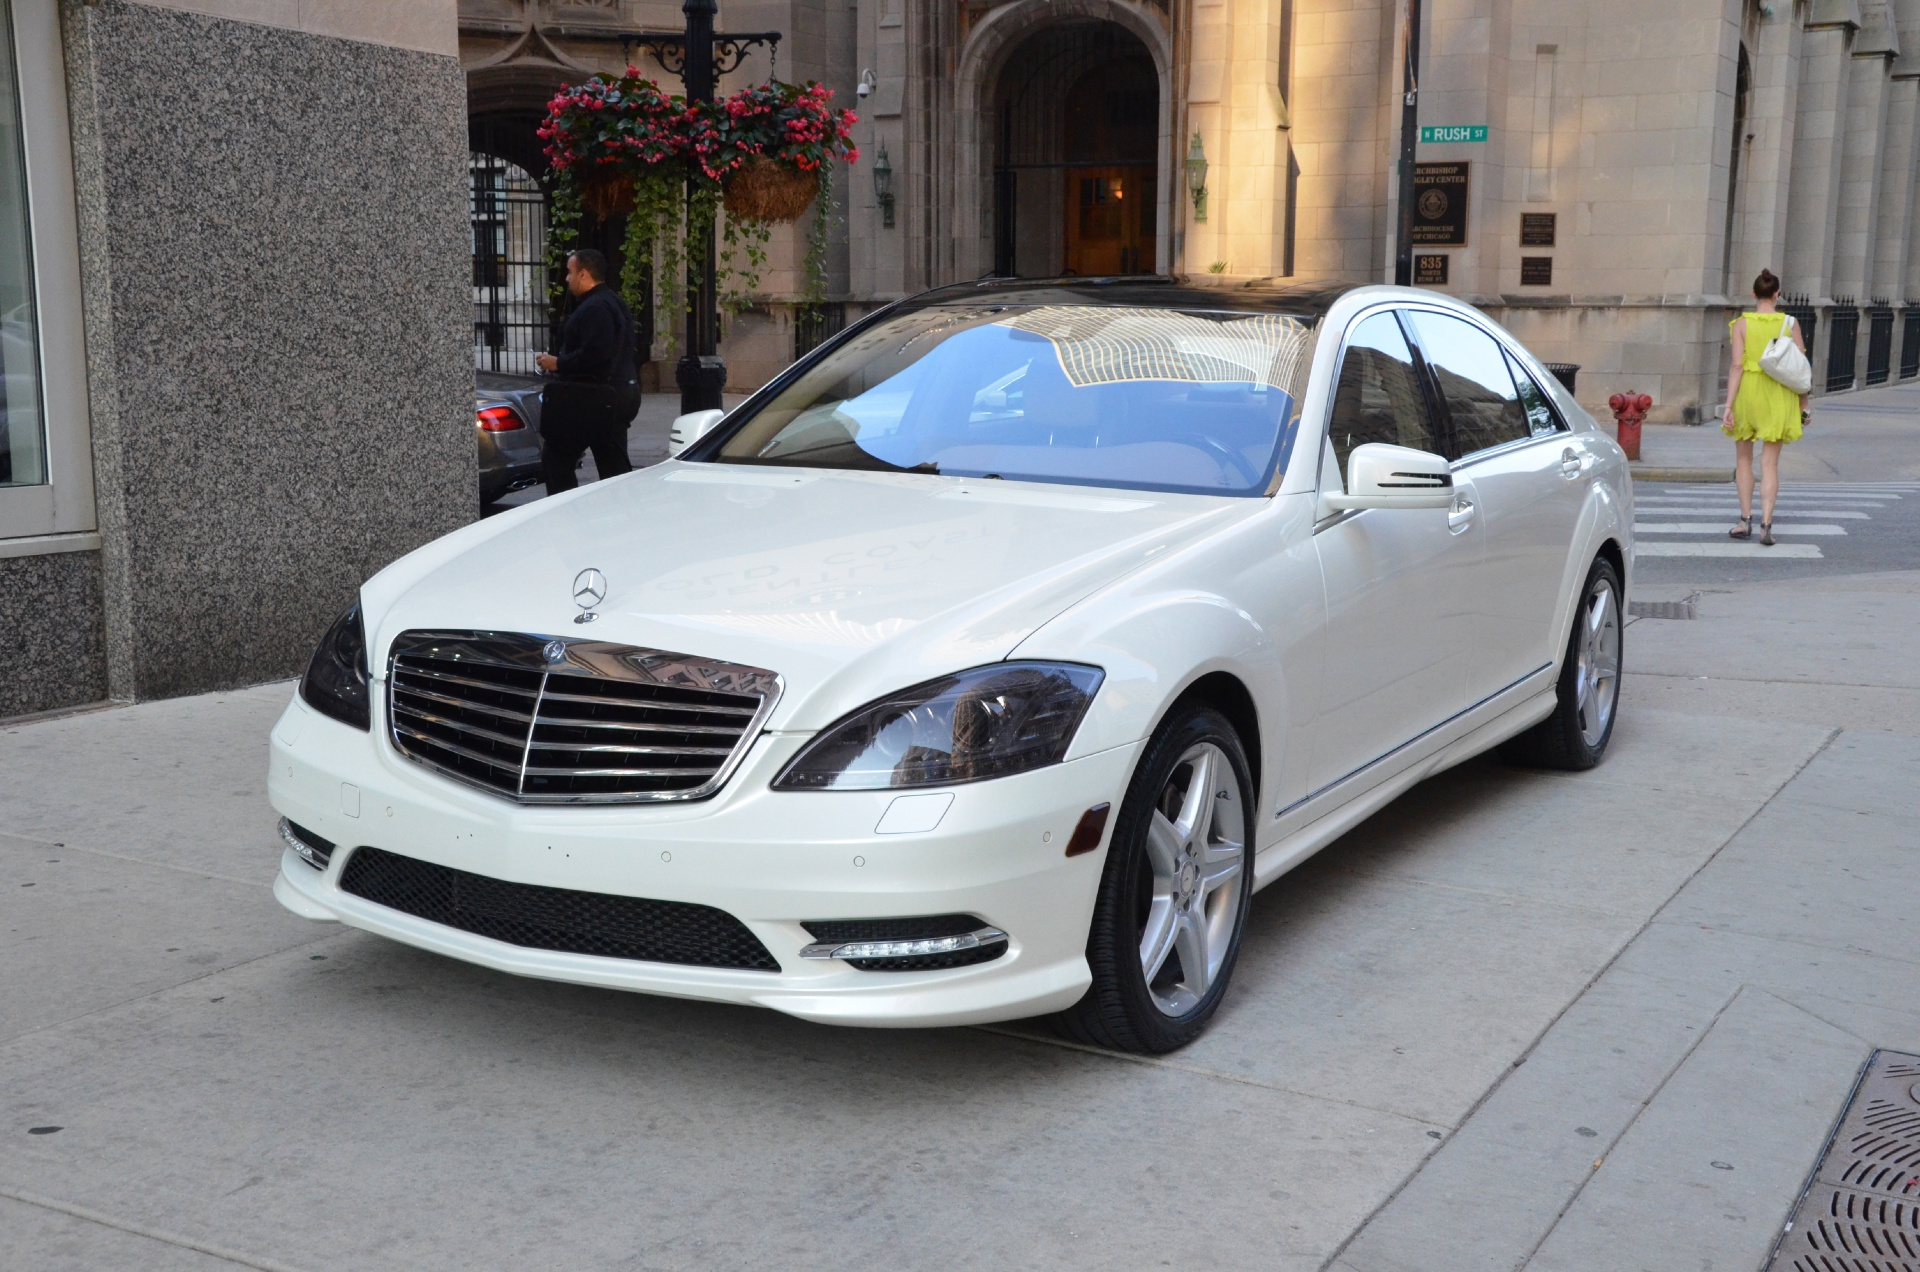 2010 mercedes benz s class s550 used bentley used for 2010 mercedes benz s550